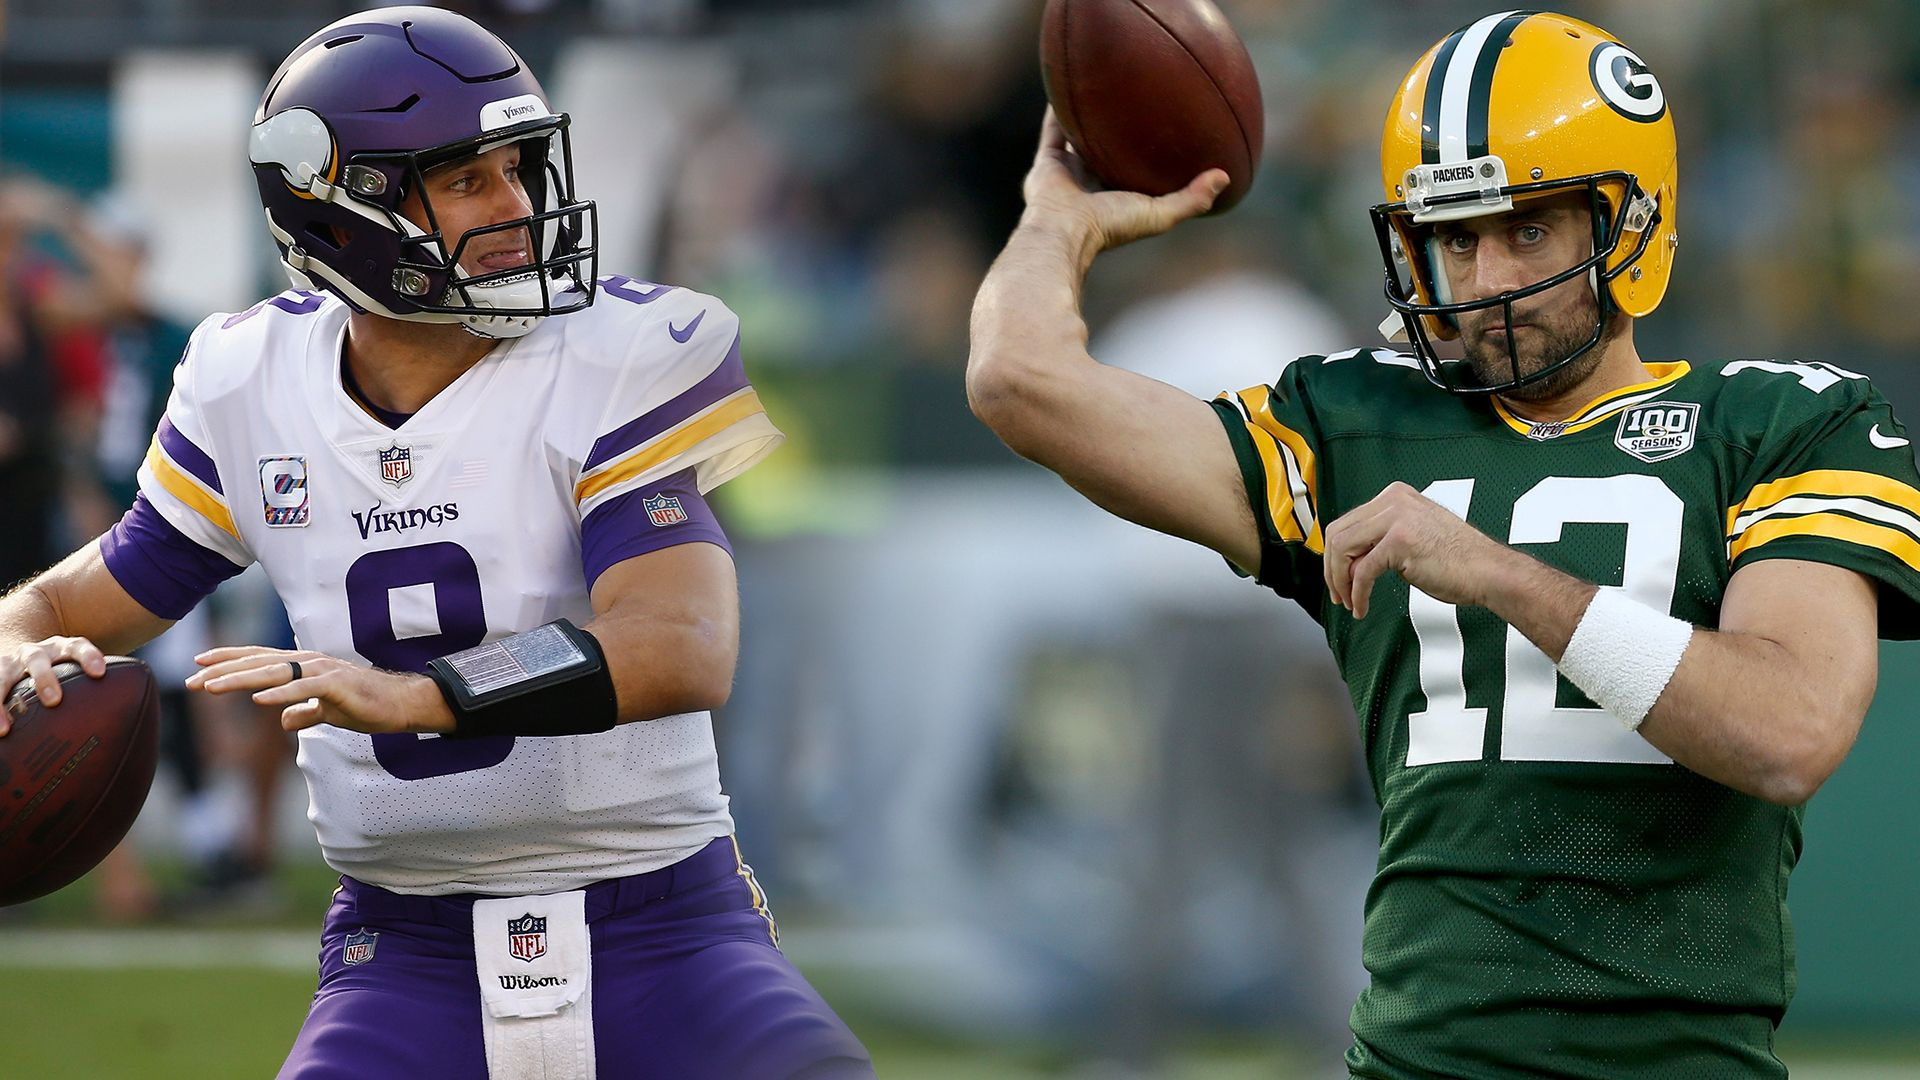 Packers Vs Vikings New Orleans Watch Party Packers Vs Vikings New Orleans Watch Party